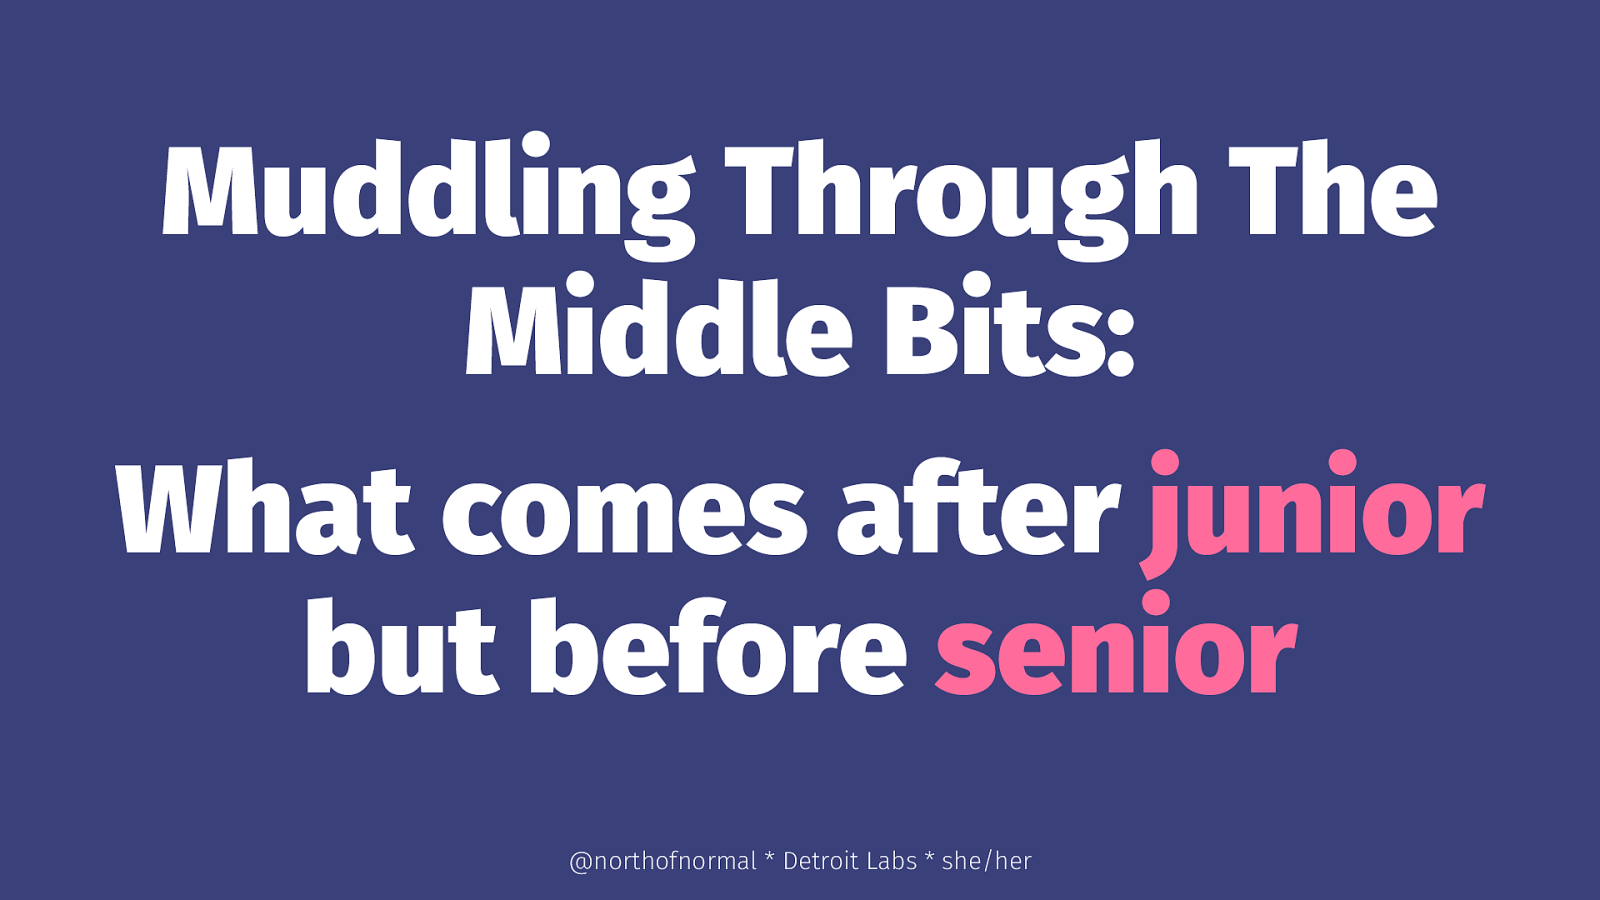 Muddling Through The Middle Bits: What comes after junior but before senior